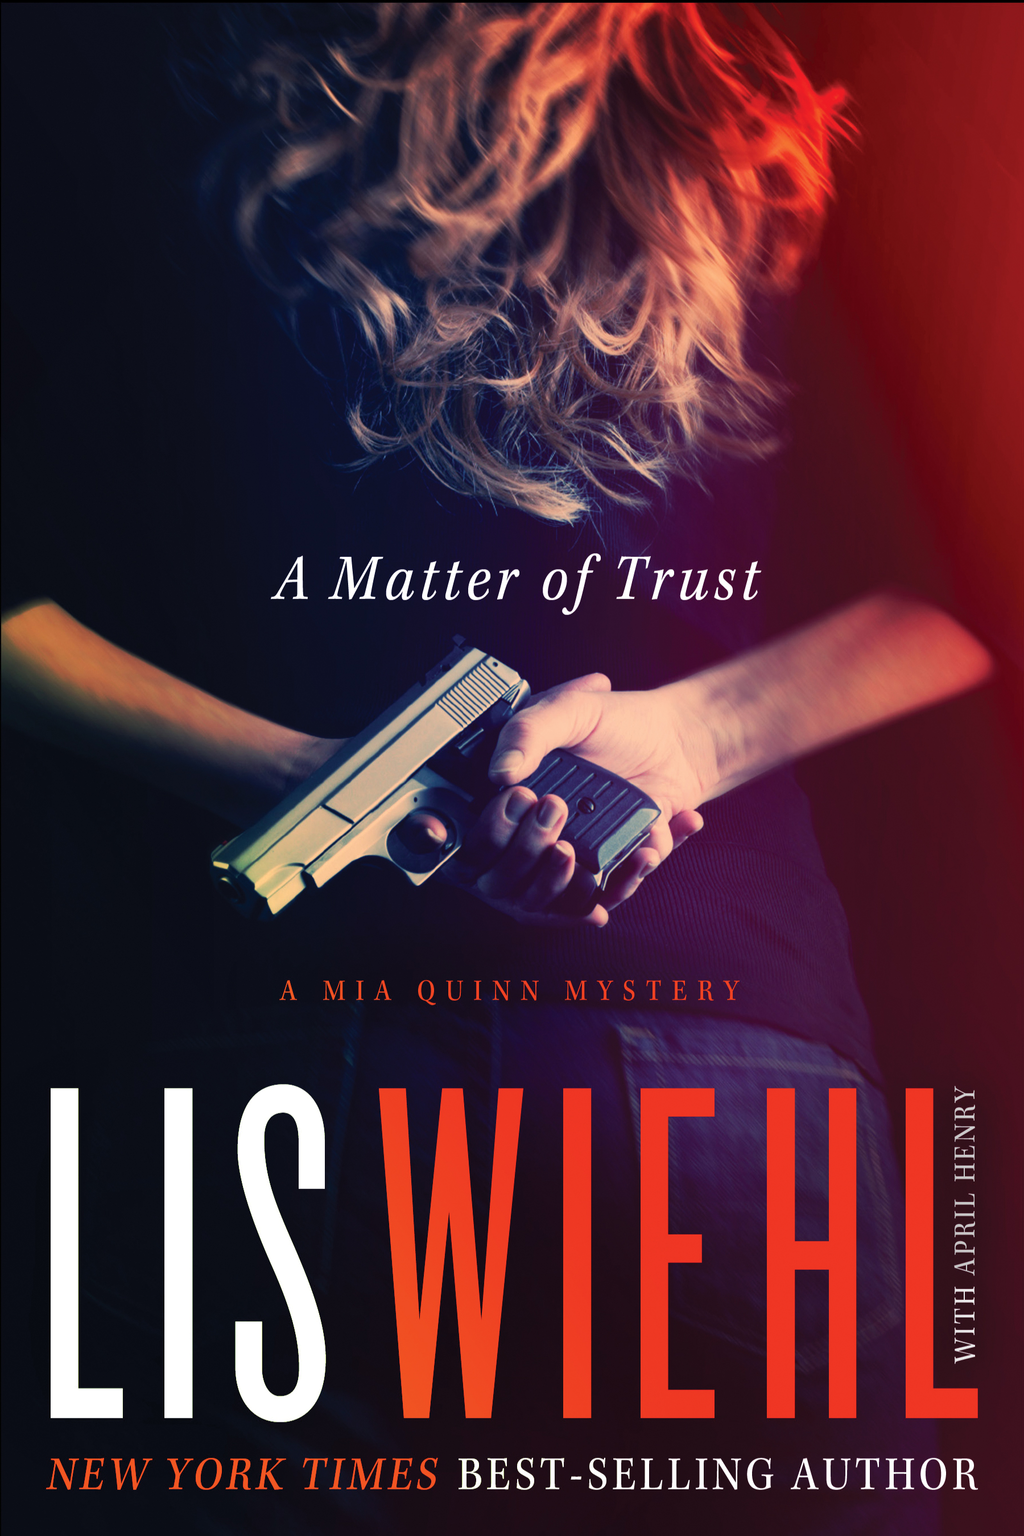 A Matter of Trust By: Lis Wiehl